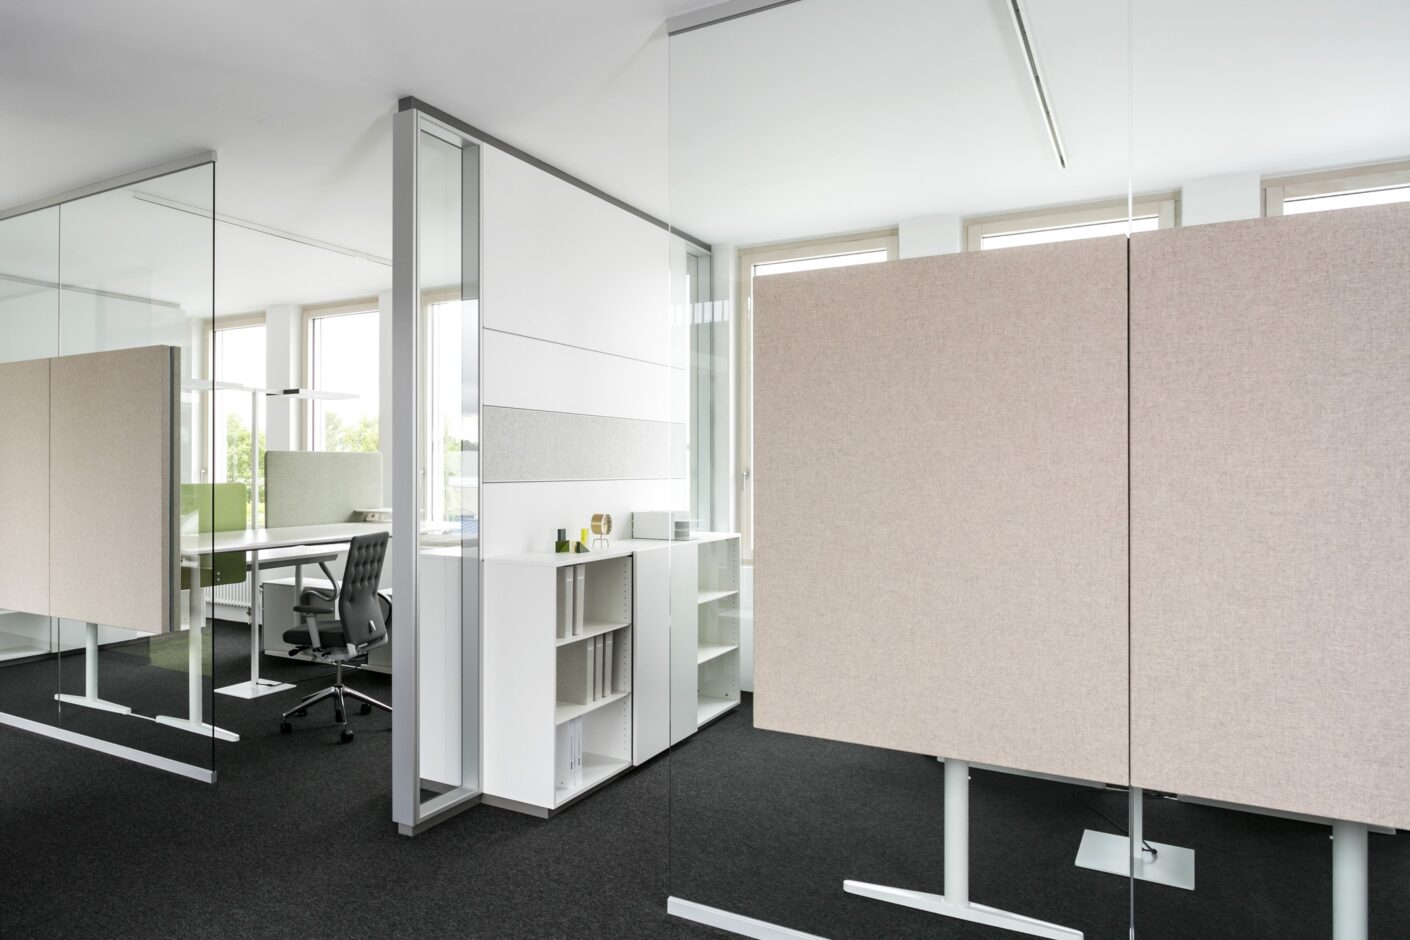 fecophon fabric│feco partition walls│feco-forum showroom